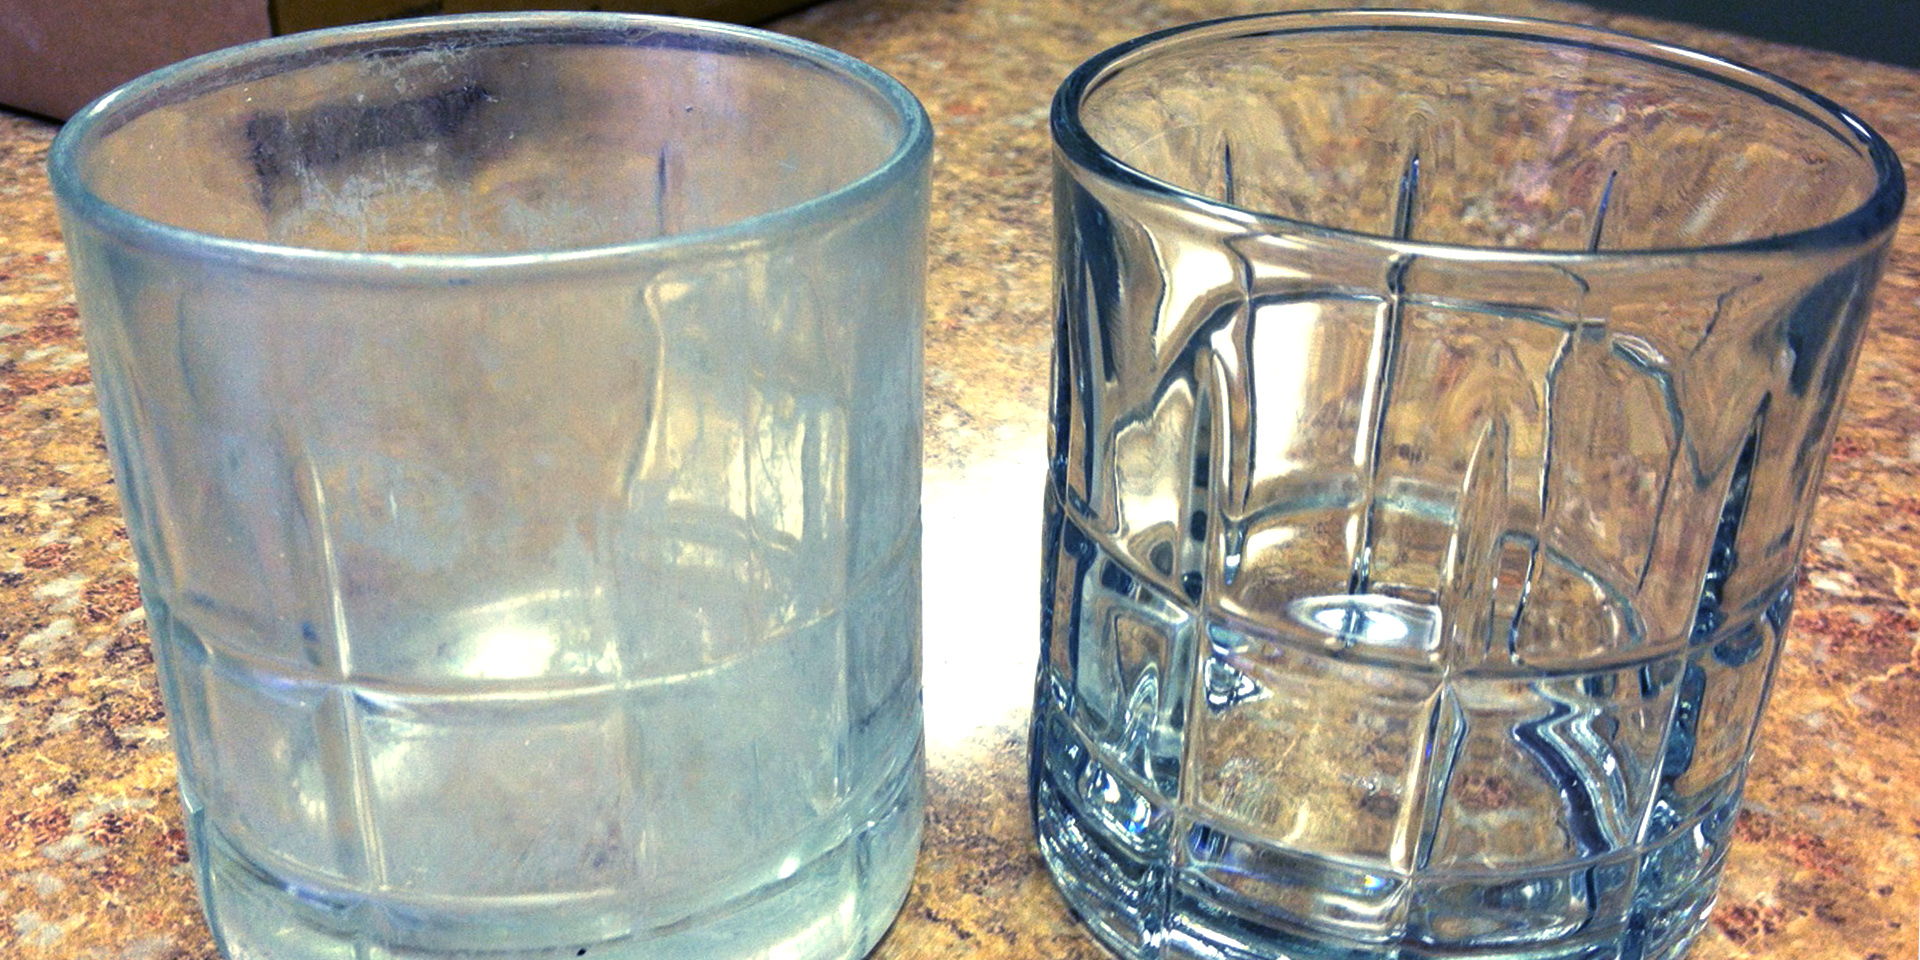 hard-water-vs-soft-water-cloudy-and-clear-glass-cup-dishes